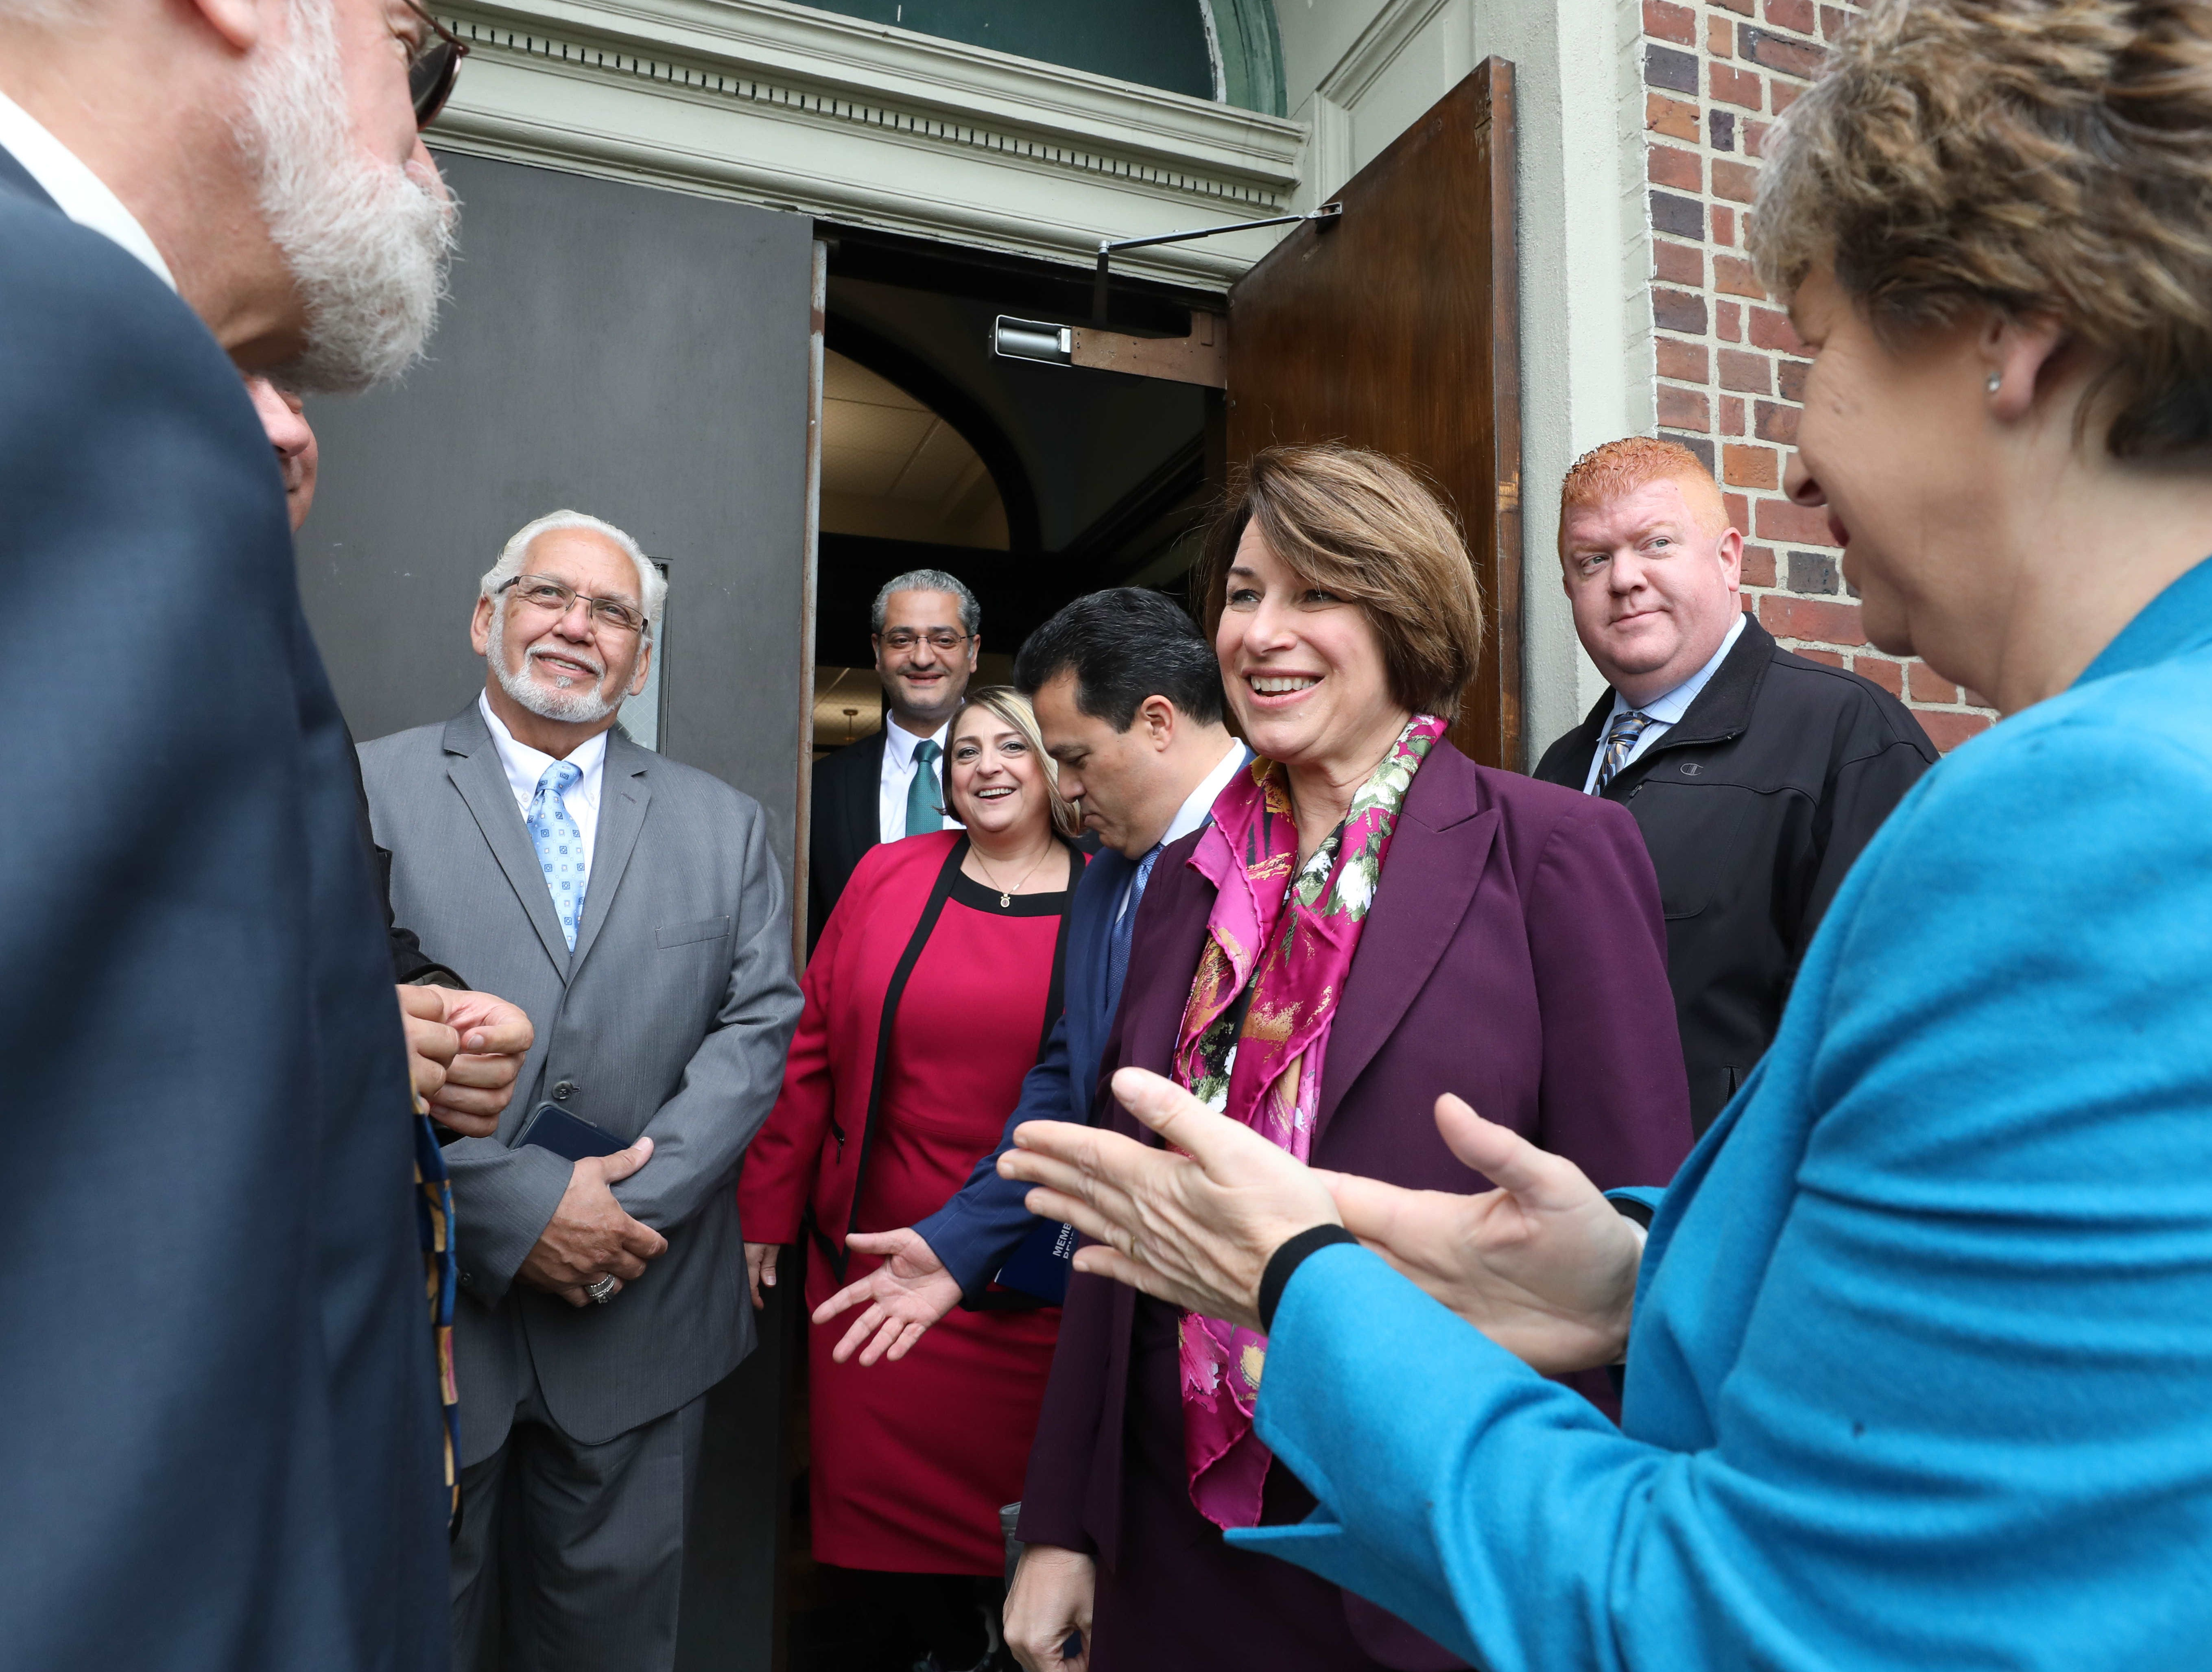 U.S. Sen. Amy Klobuchar (D-Minn.), a Democratic presidential candidate, greets invited guests outside of Gorton High School in Yonkers, May 10, 2019. She was there for a tour of the school.